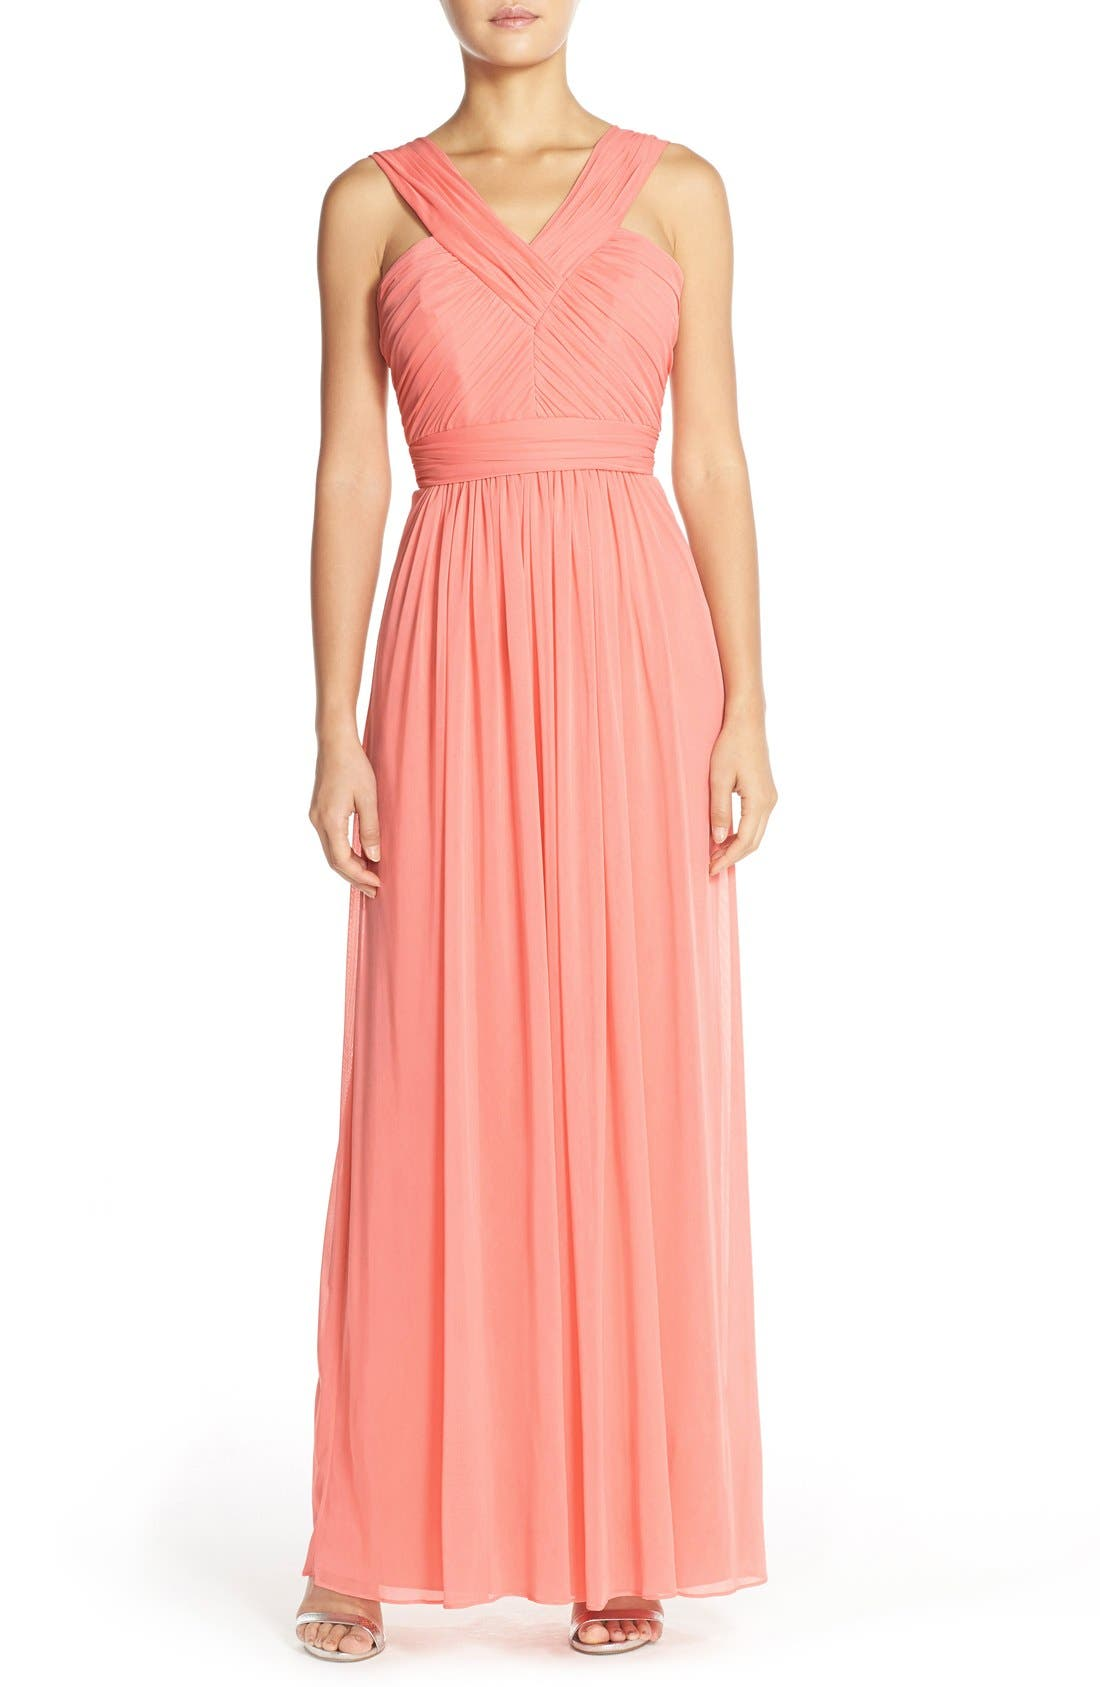 Alternate Image 1 Selected - Alfred Sung Shirred Chiffon V-Neck Gown